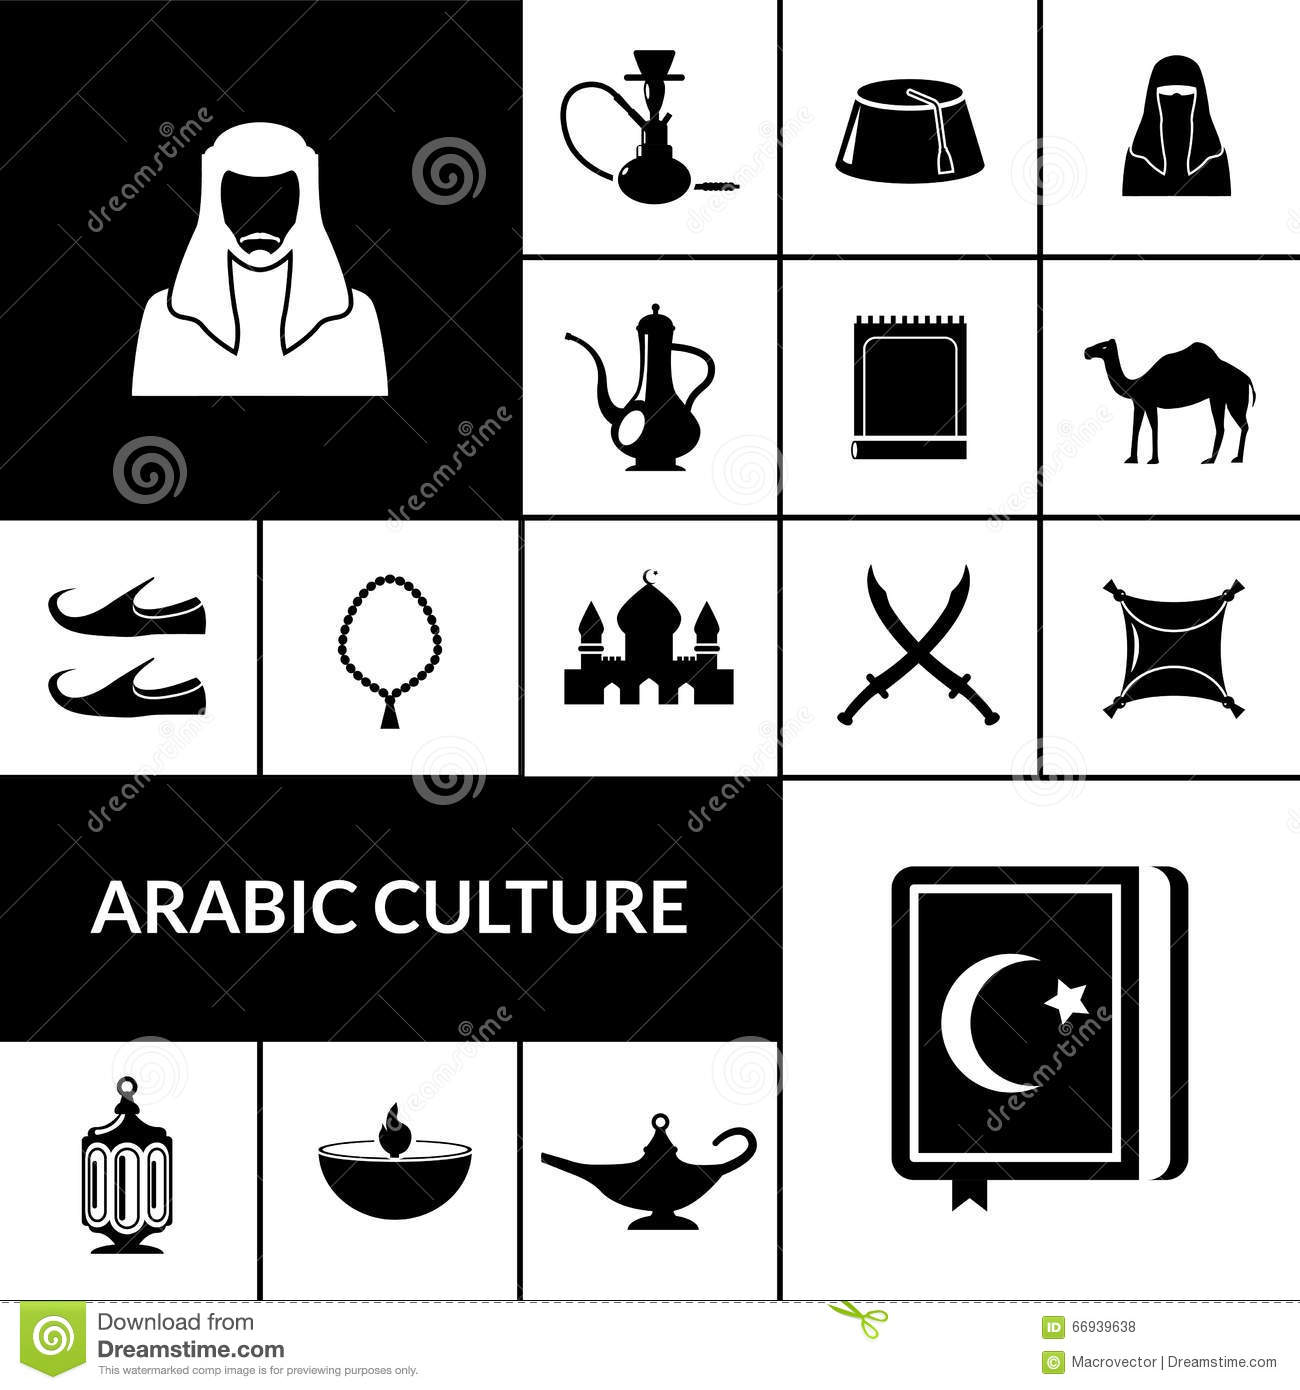 Arabic culture black icons set stock vector illustration of prayer arabic culture black icons set buycottarizona Gallery